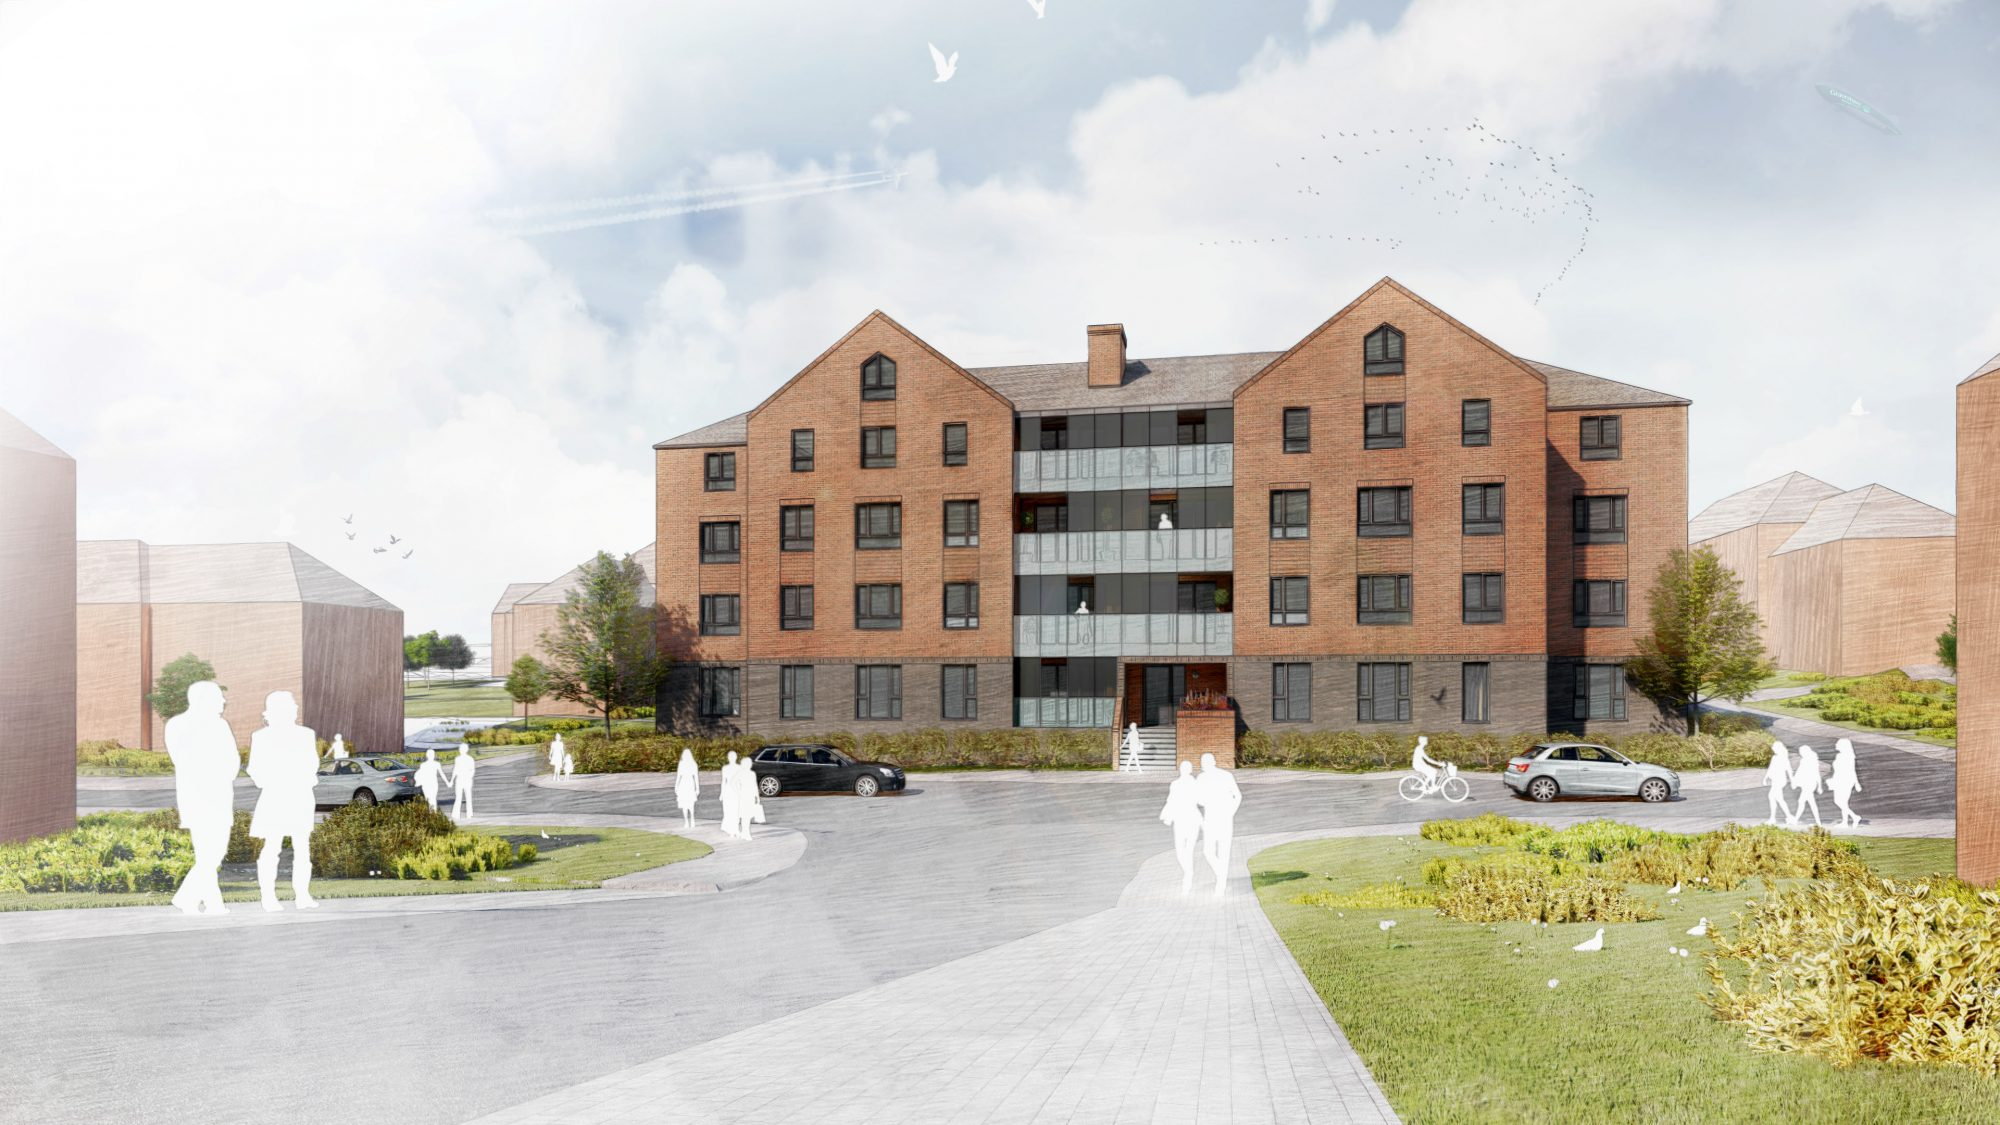 Planning Approved For Second Gravesham Site This Year